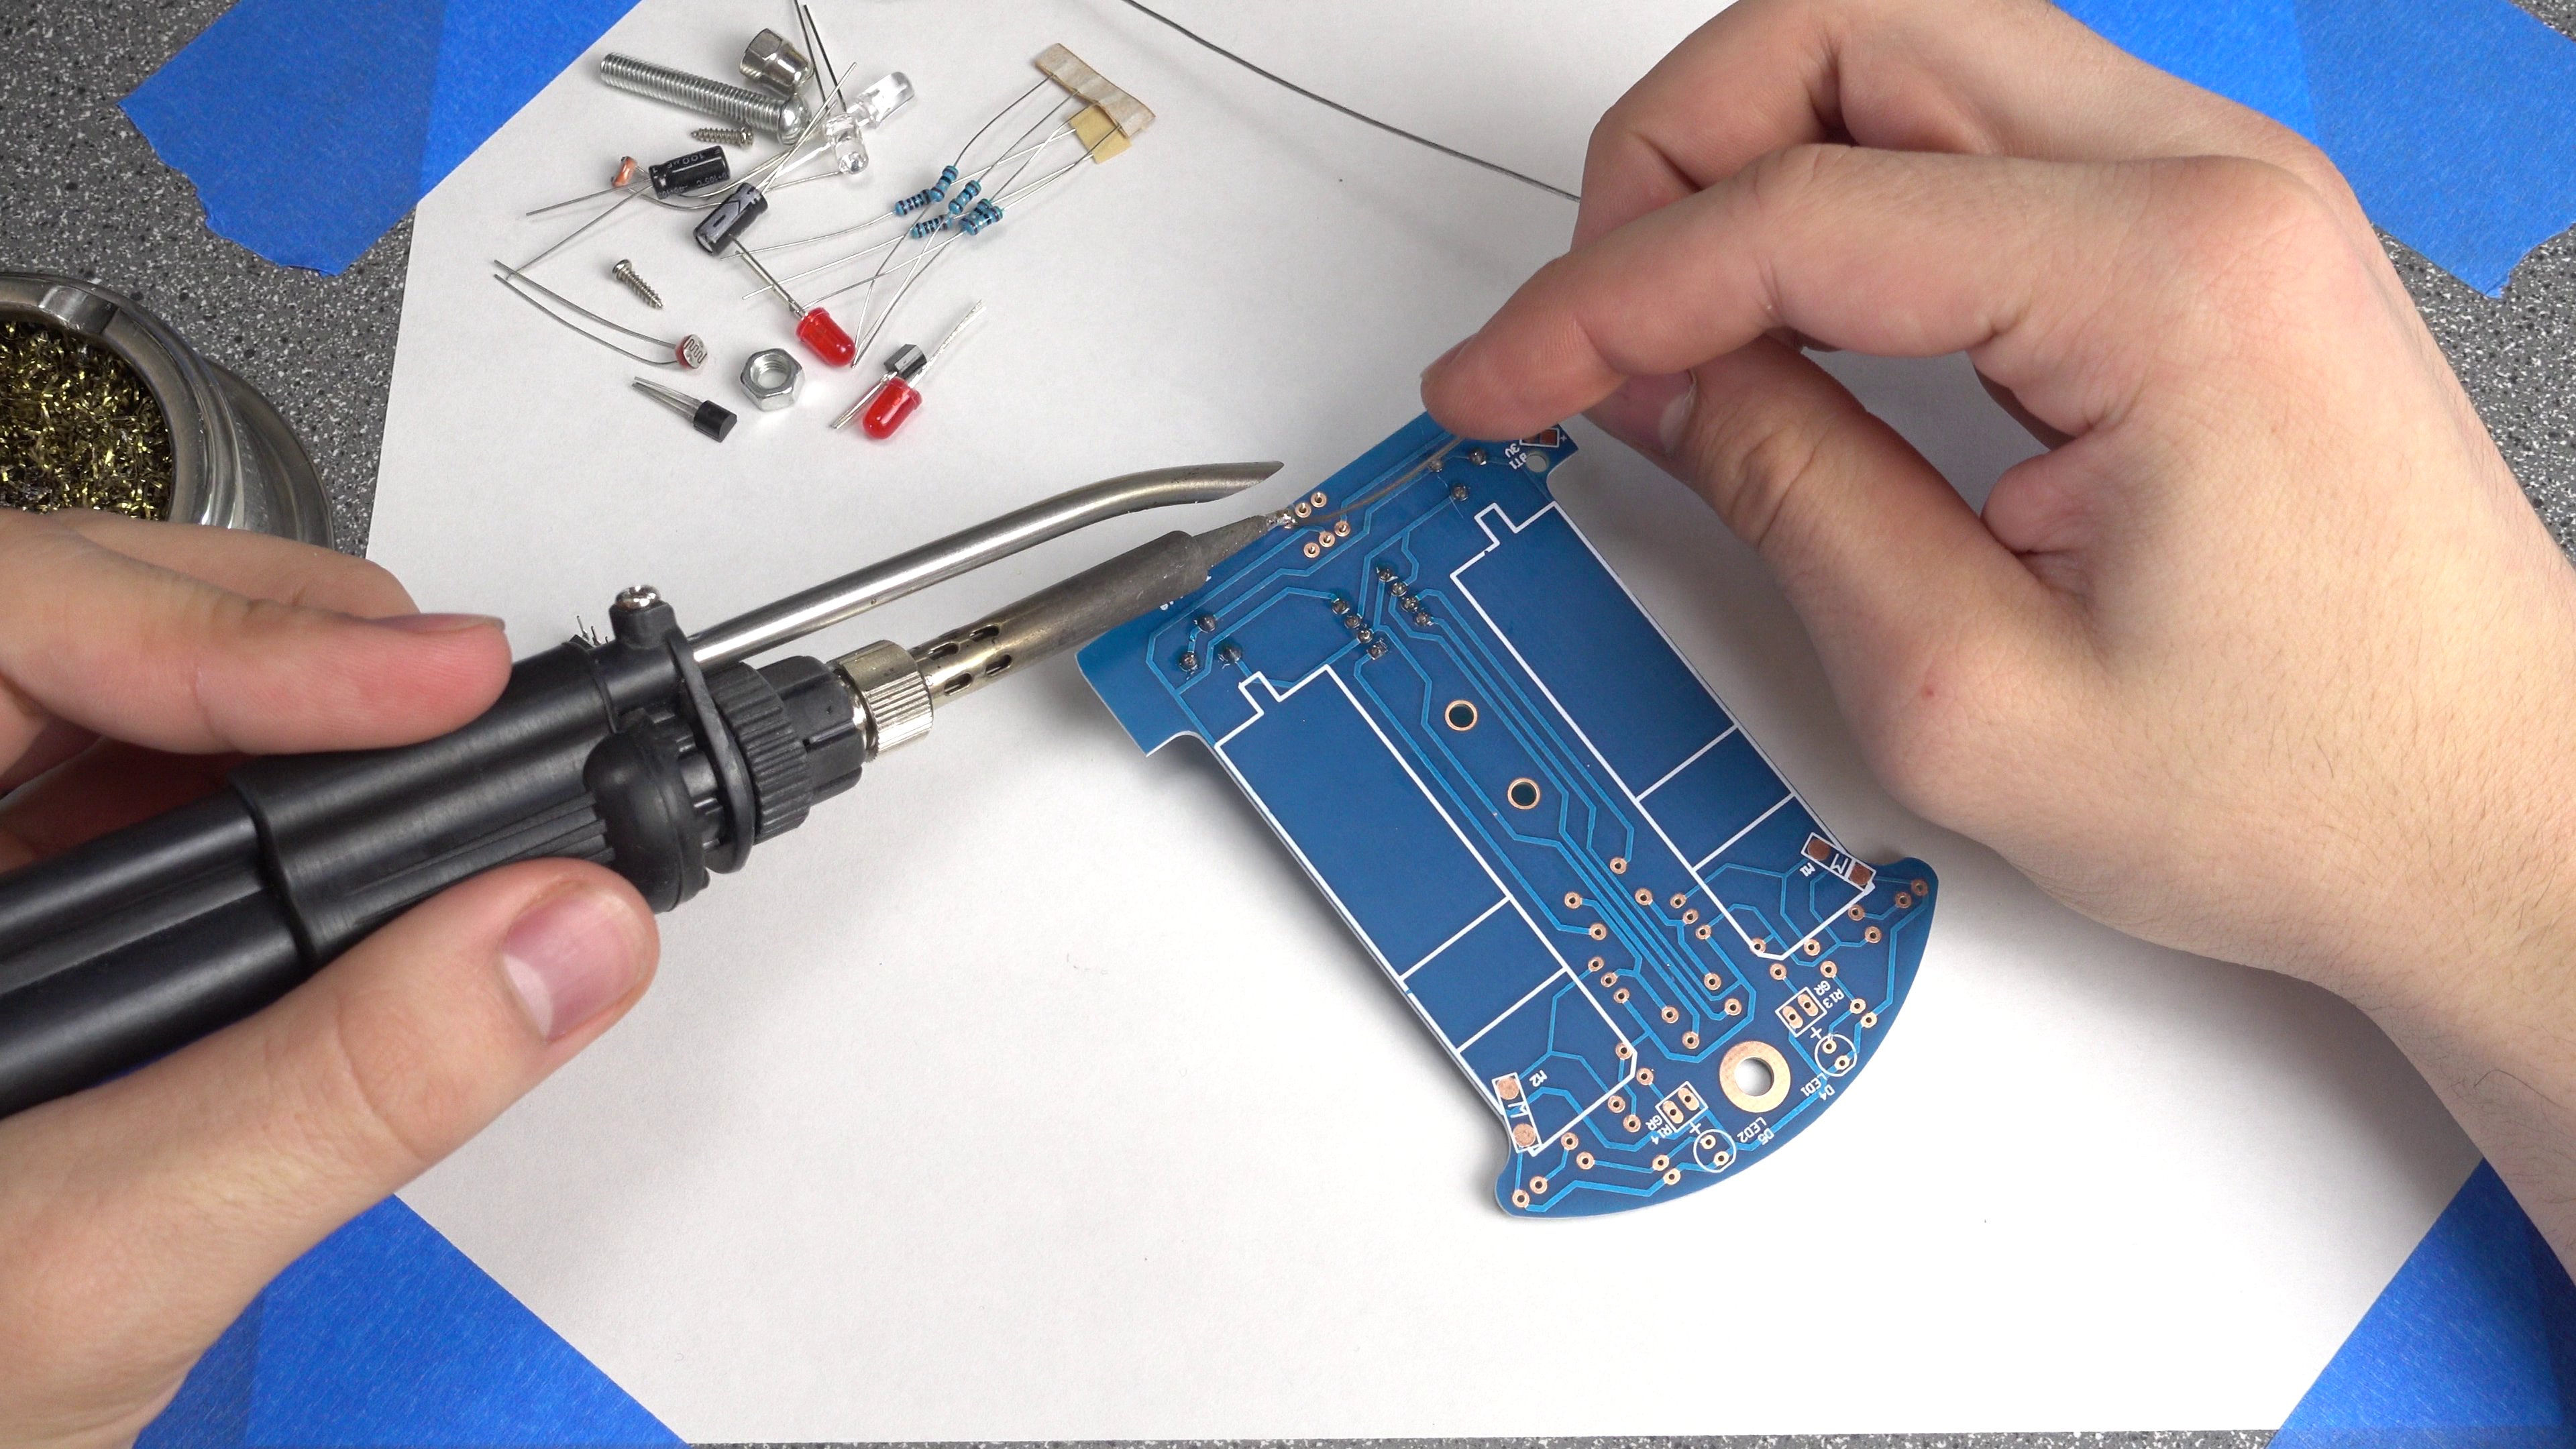 Picture of Soldering: IC Socket, Potentiometers